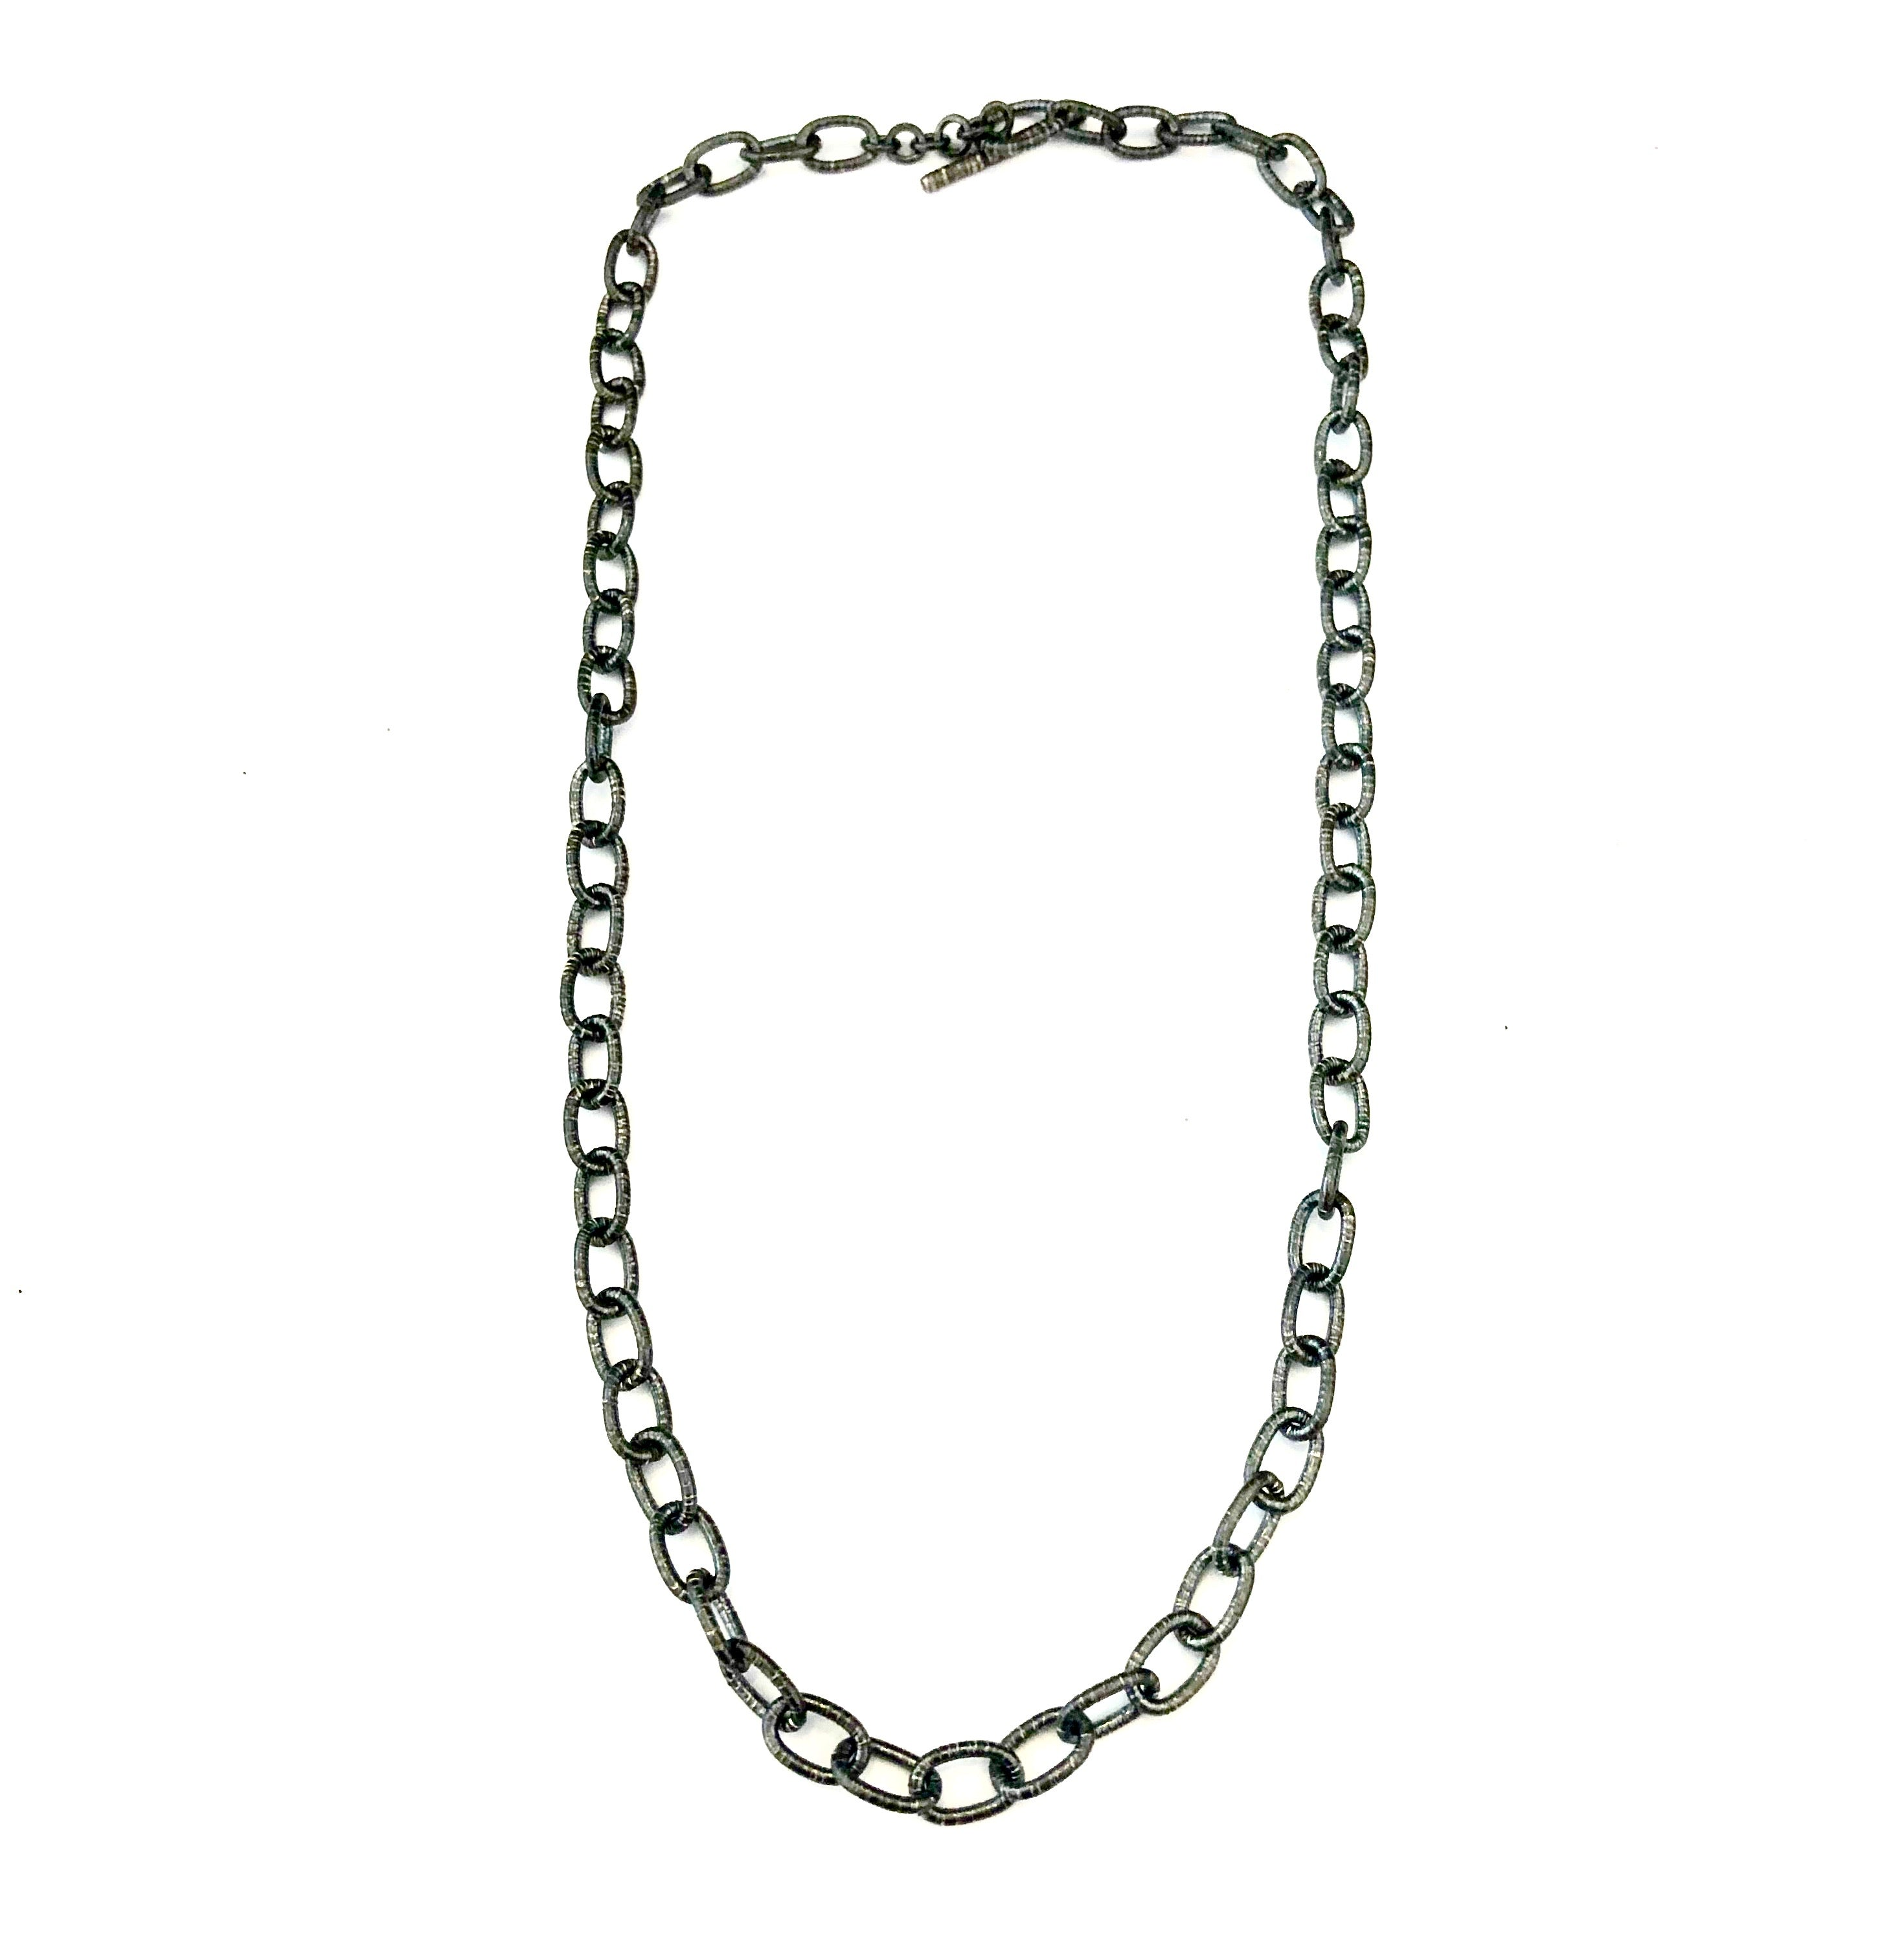 Small Textured Handmade Oval Silver Link Chain